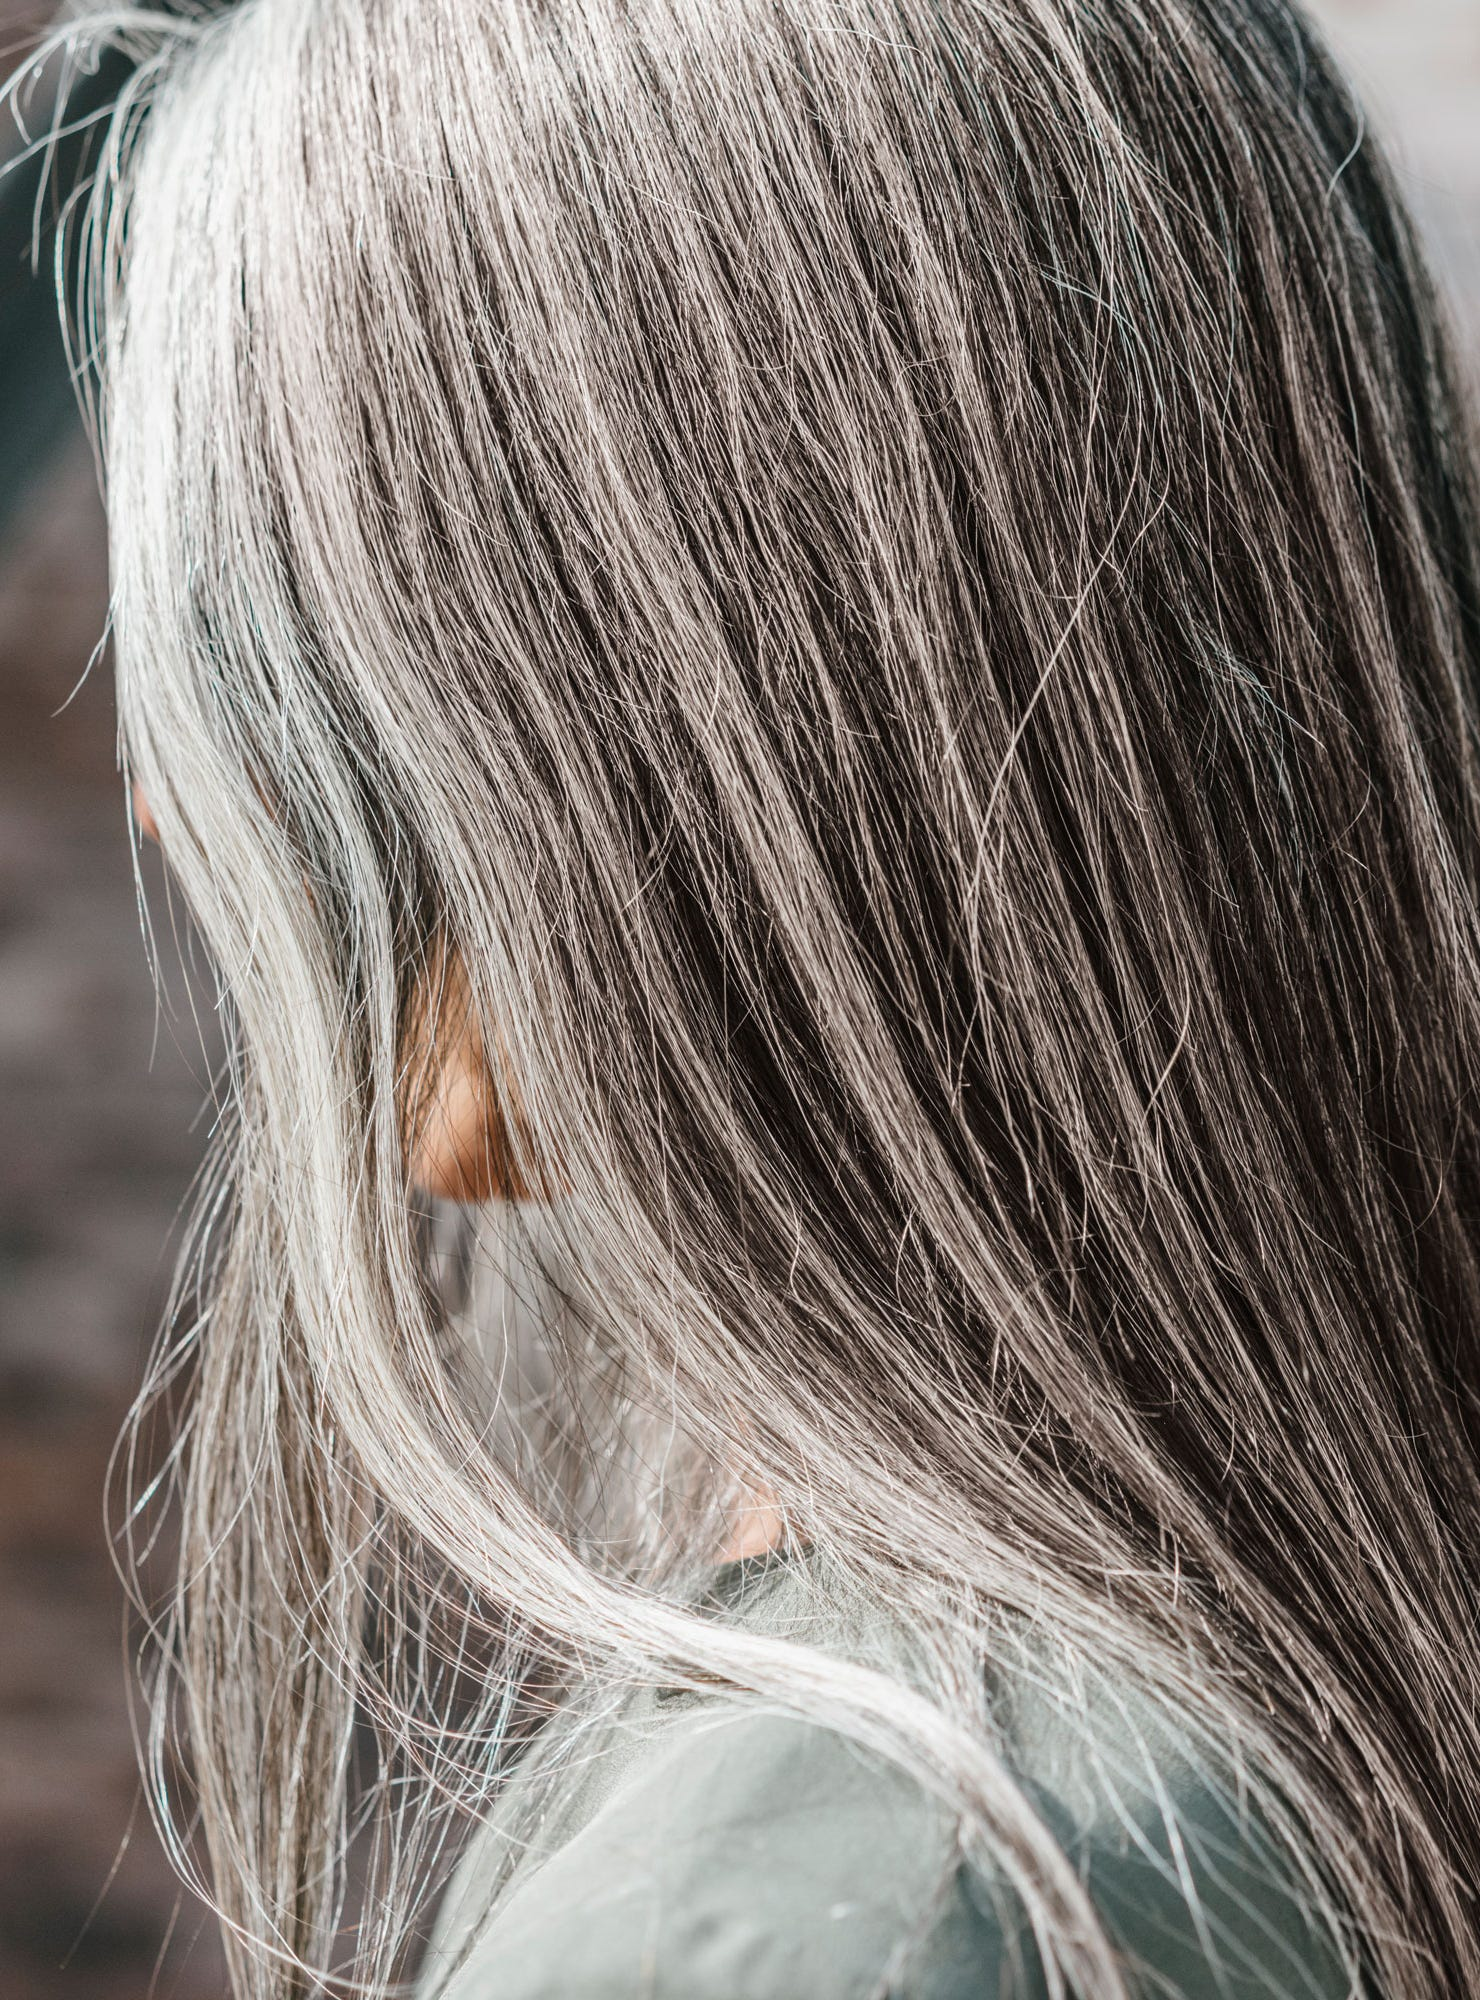 The Young Women Embracing Their Gray Hair Early